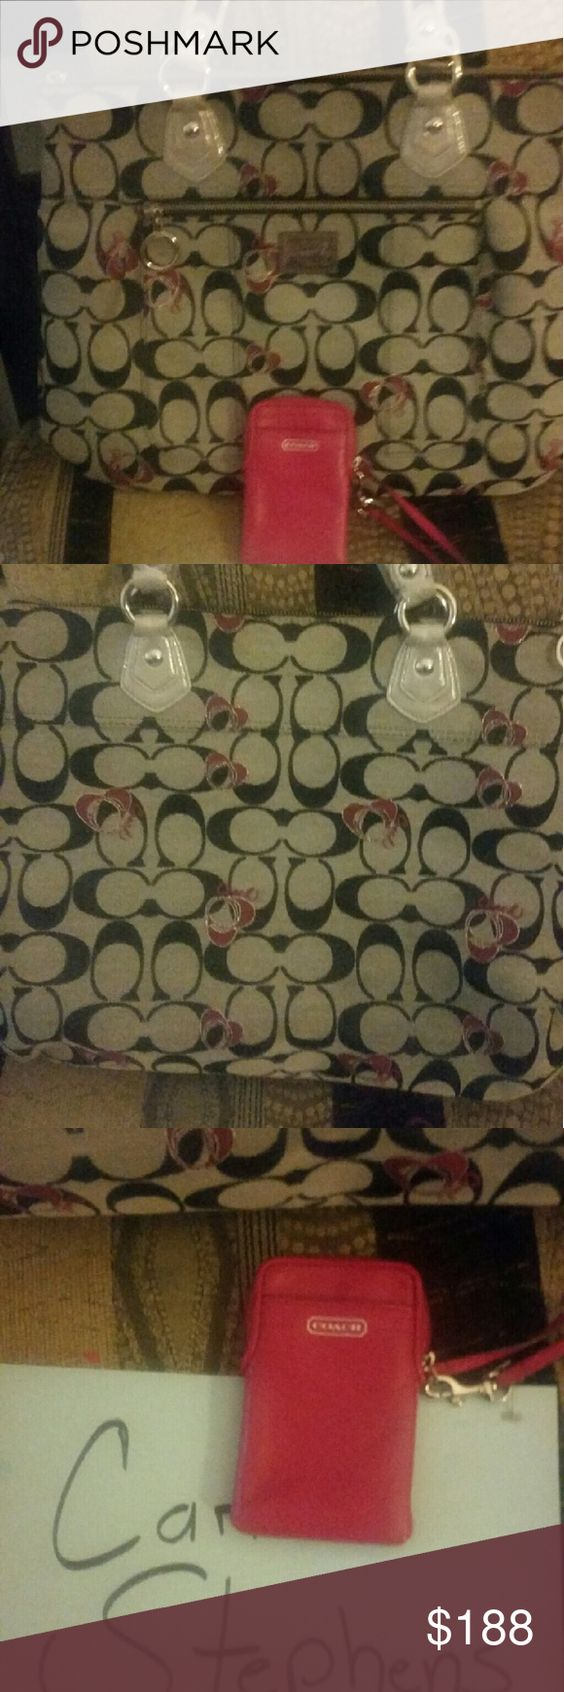 COACH POPPY SET plus free MK purse charm Euc coach poppy set in EUC like new large tote and small pink wristlet plus get a nwt MK lighting bolt purse charm with purchase, price is firm on here Bags Totes